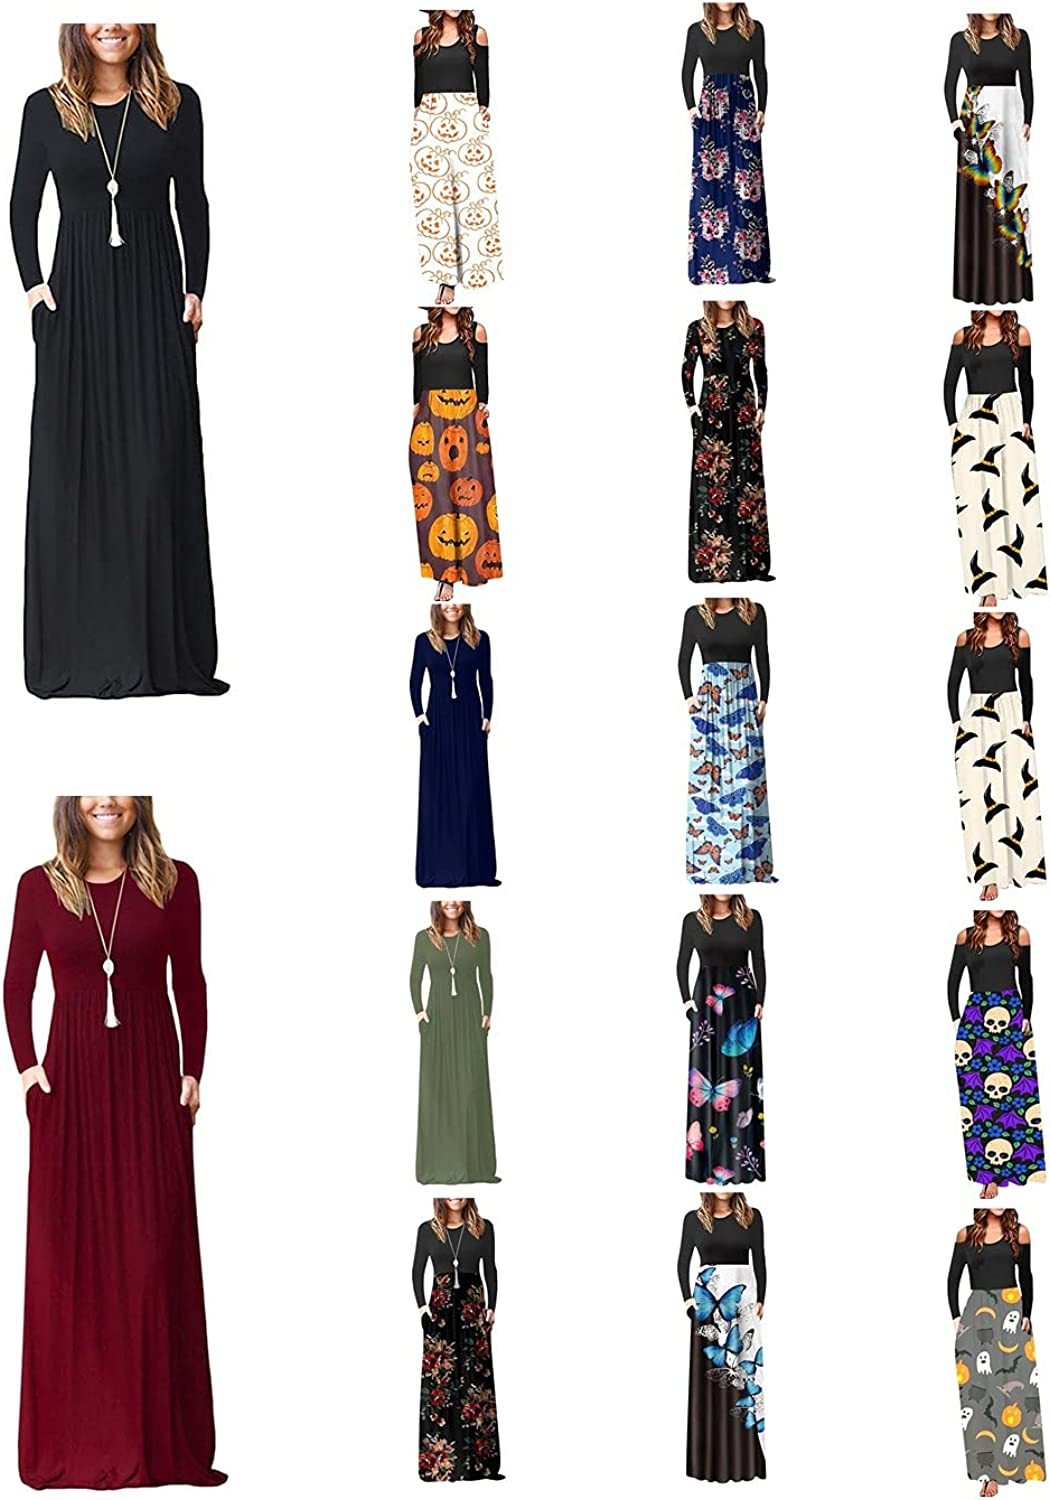 Long Sleeve Maxi Dress for Women - Crewneck Casual Boho Floral Print/Solid Long Dresses Formal Gowns and Evening Dress